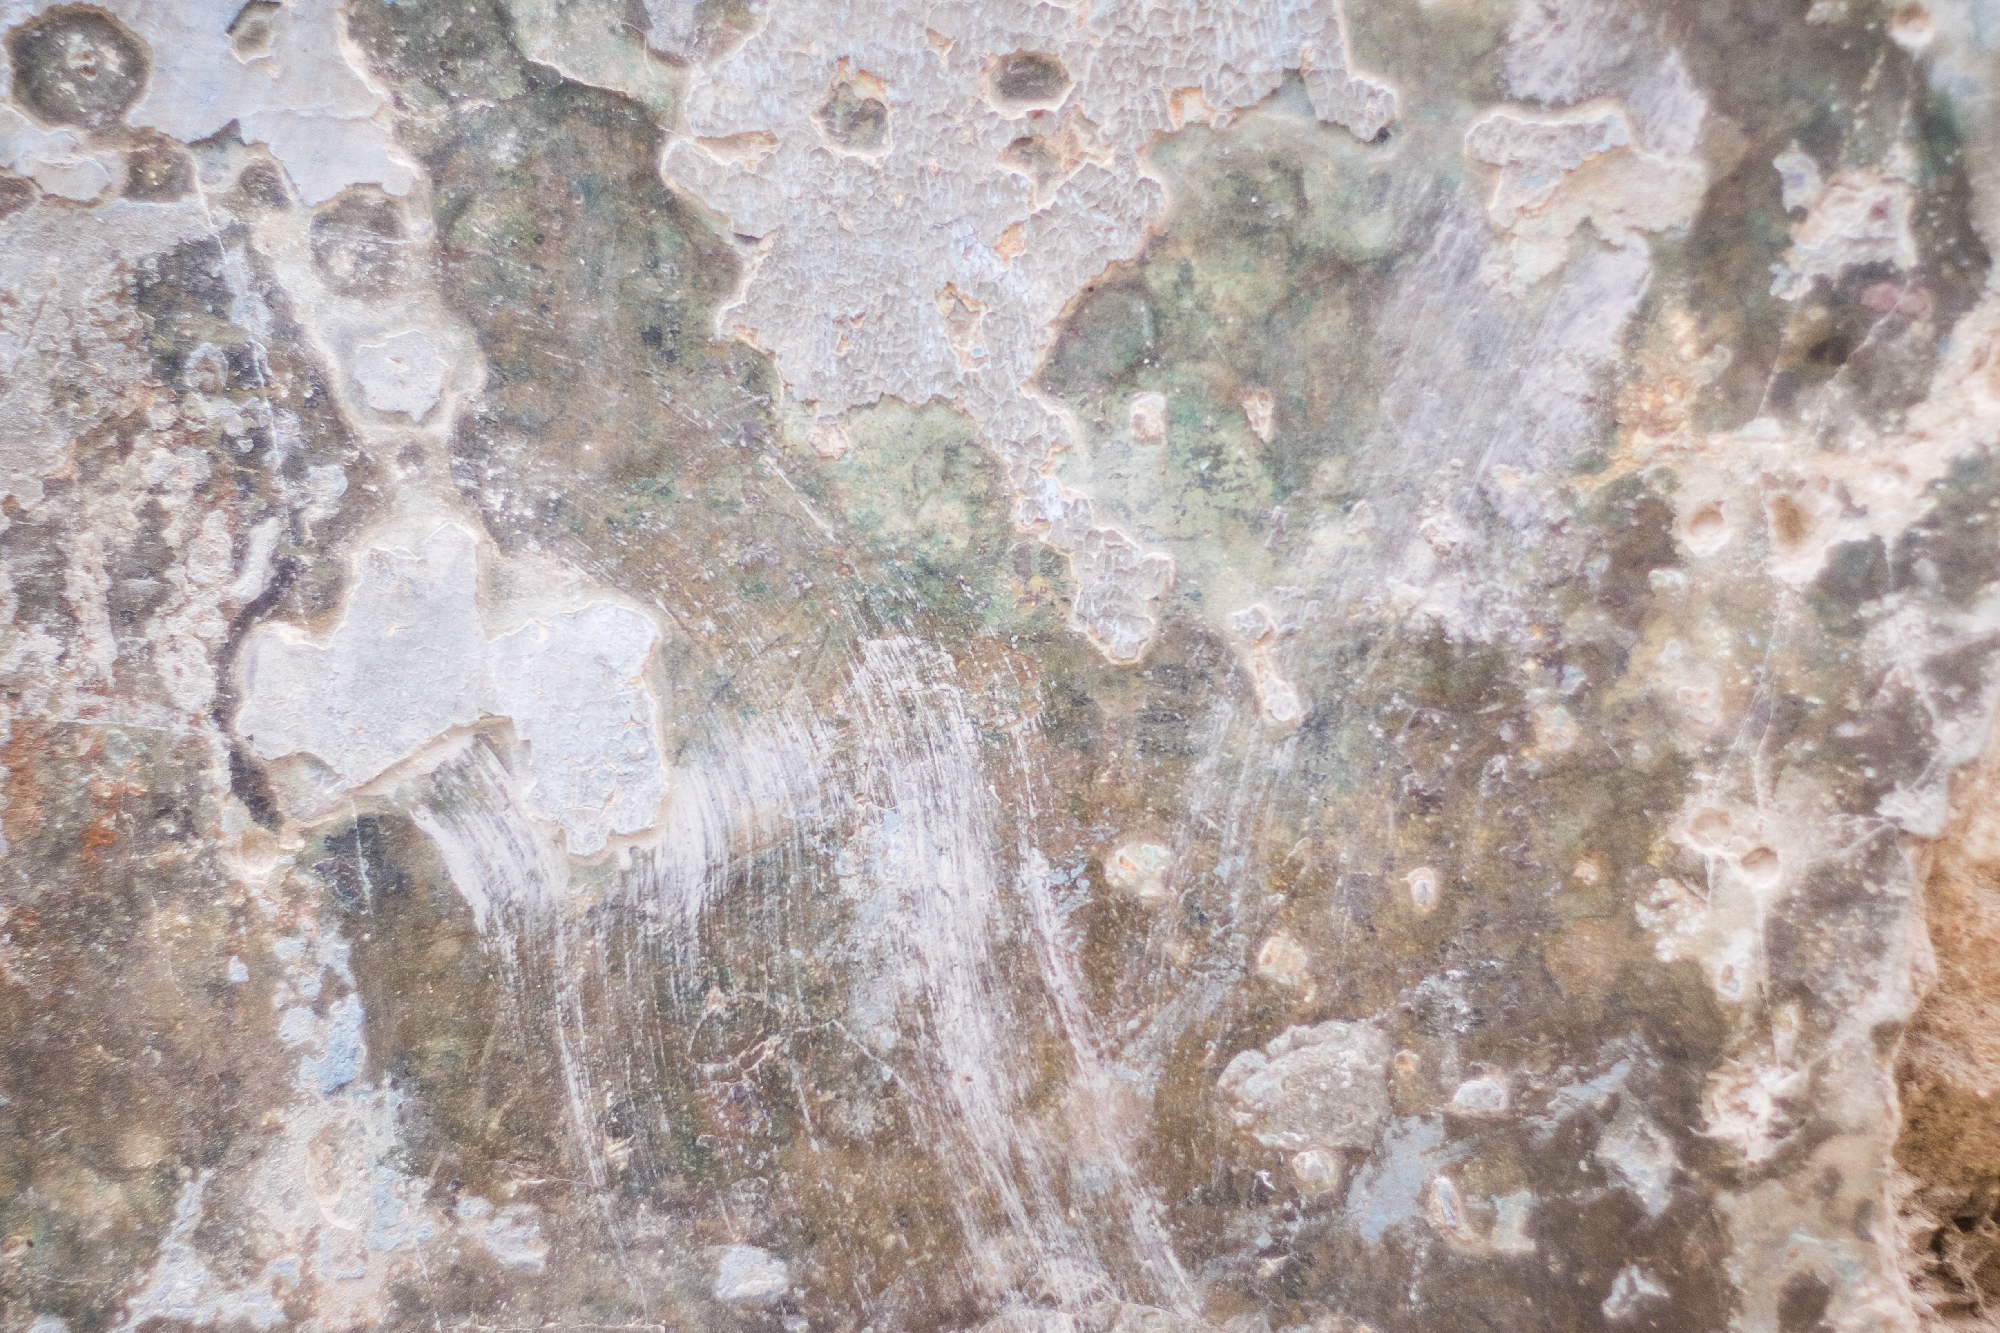 Lush layers of chipped paint and plaster create gorgeous abstractions.